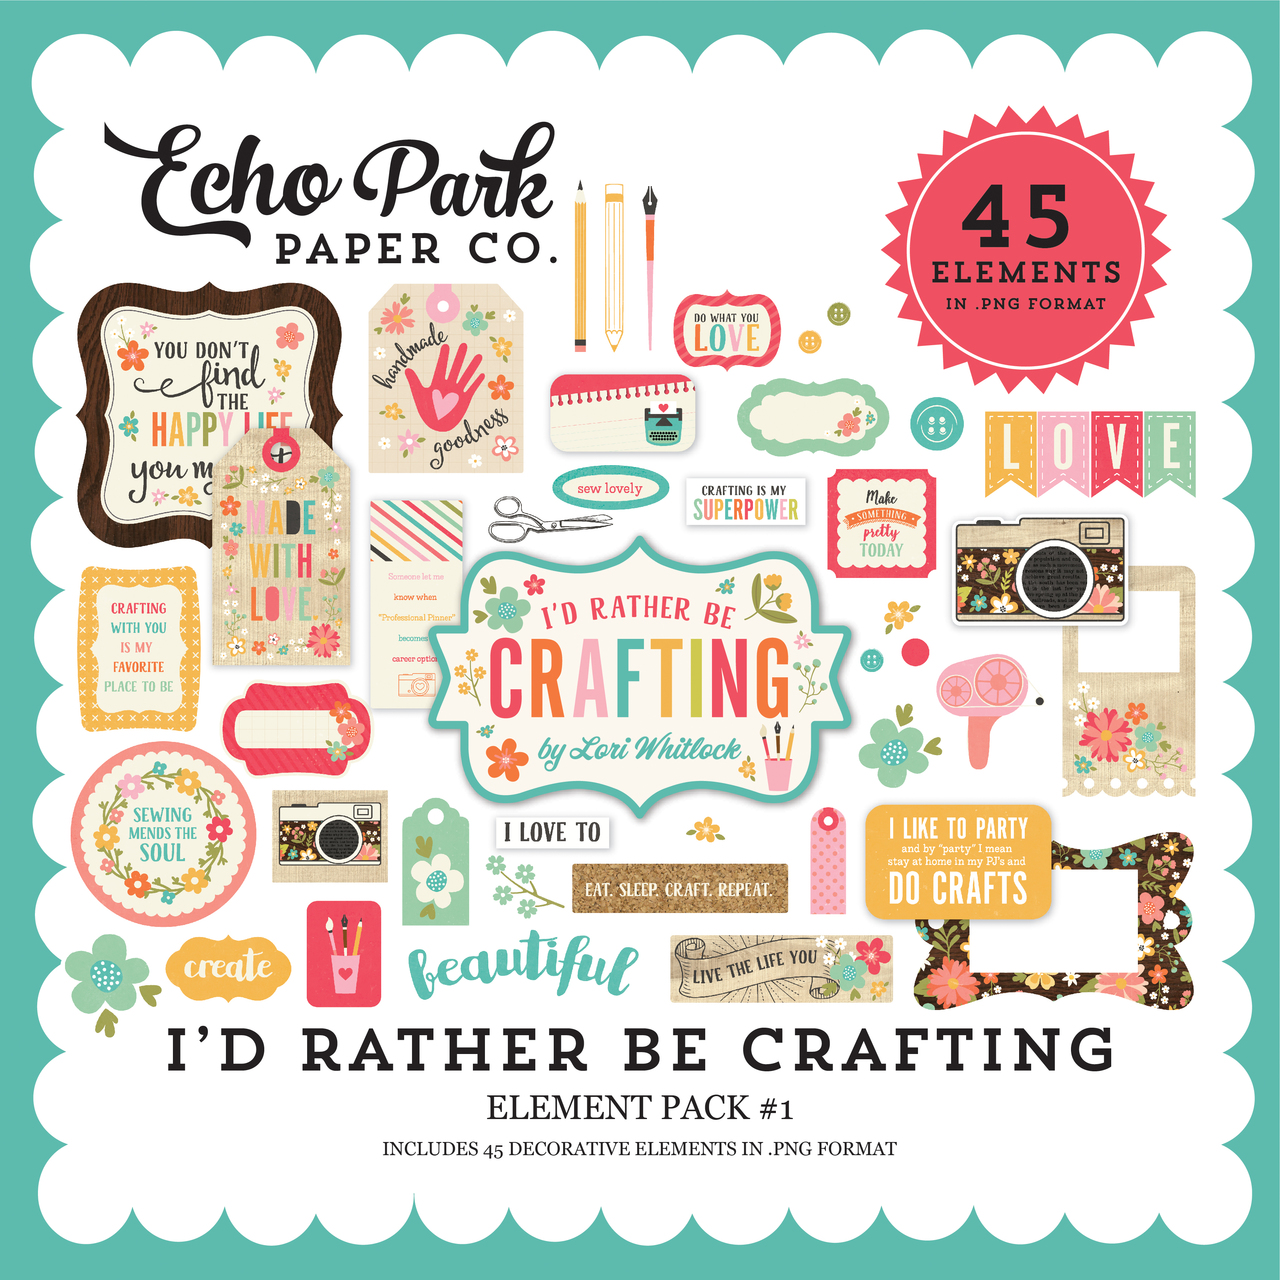 I'd Rather Be Crafting Element Pack #1